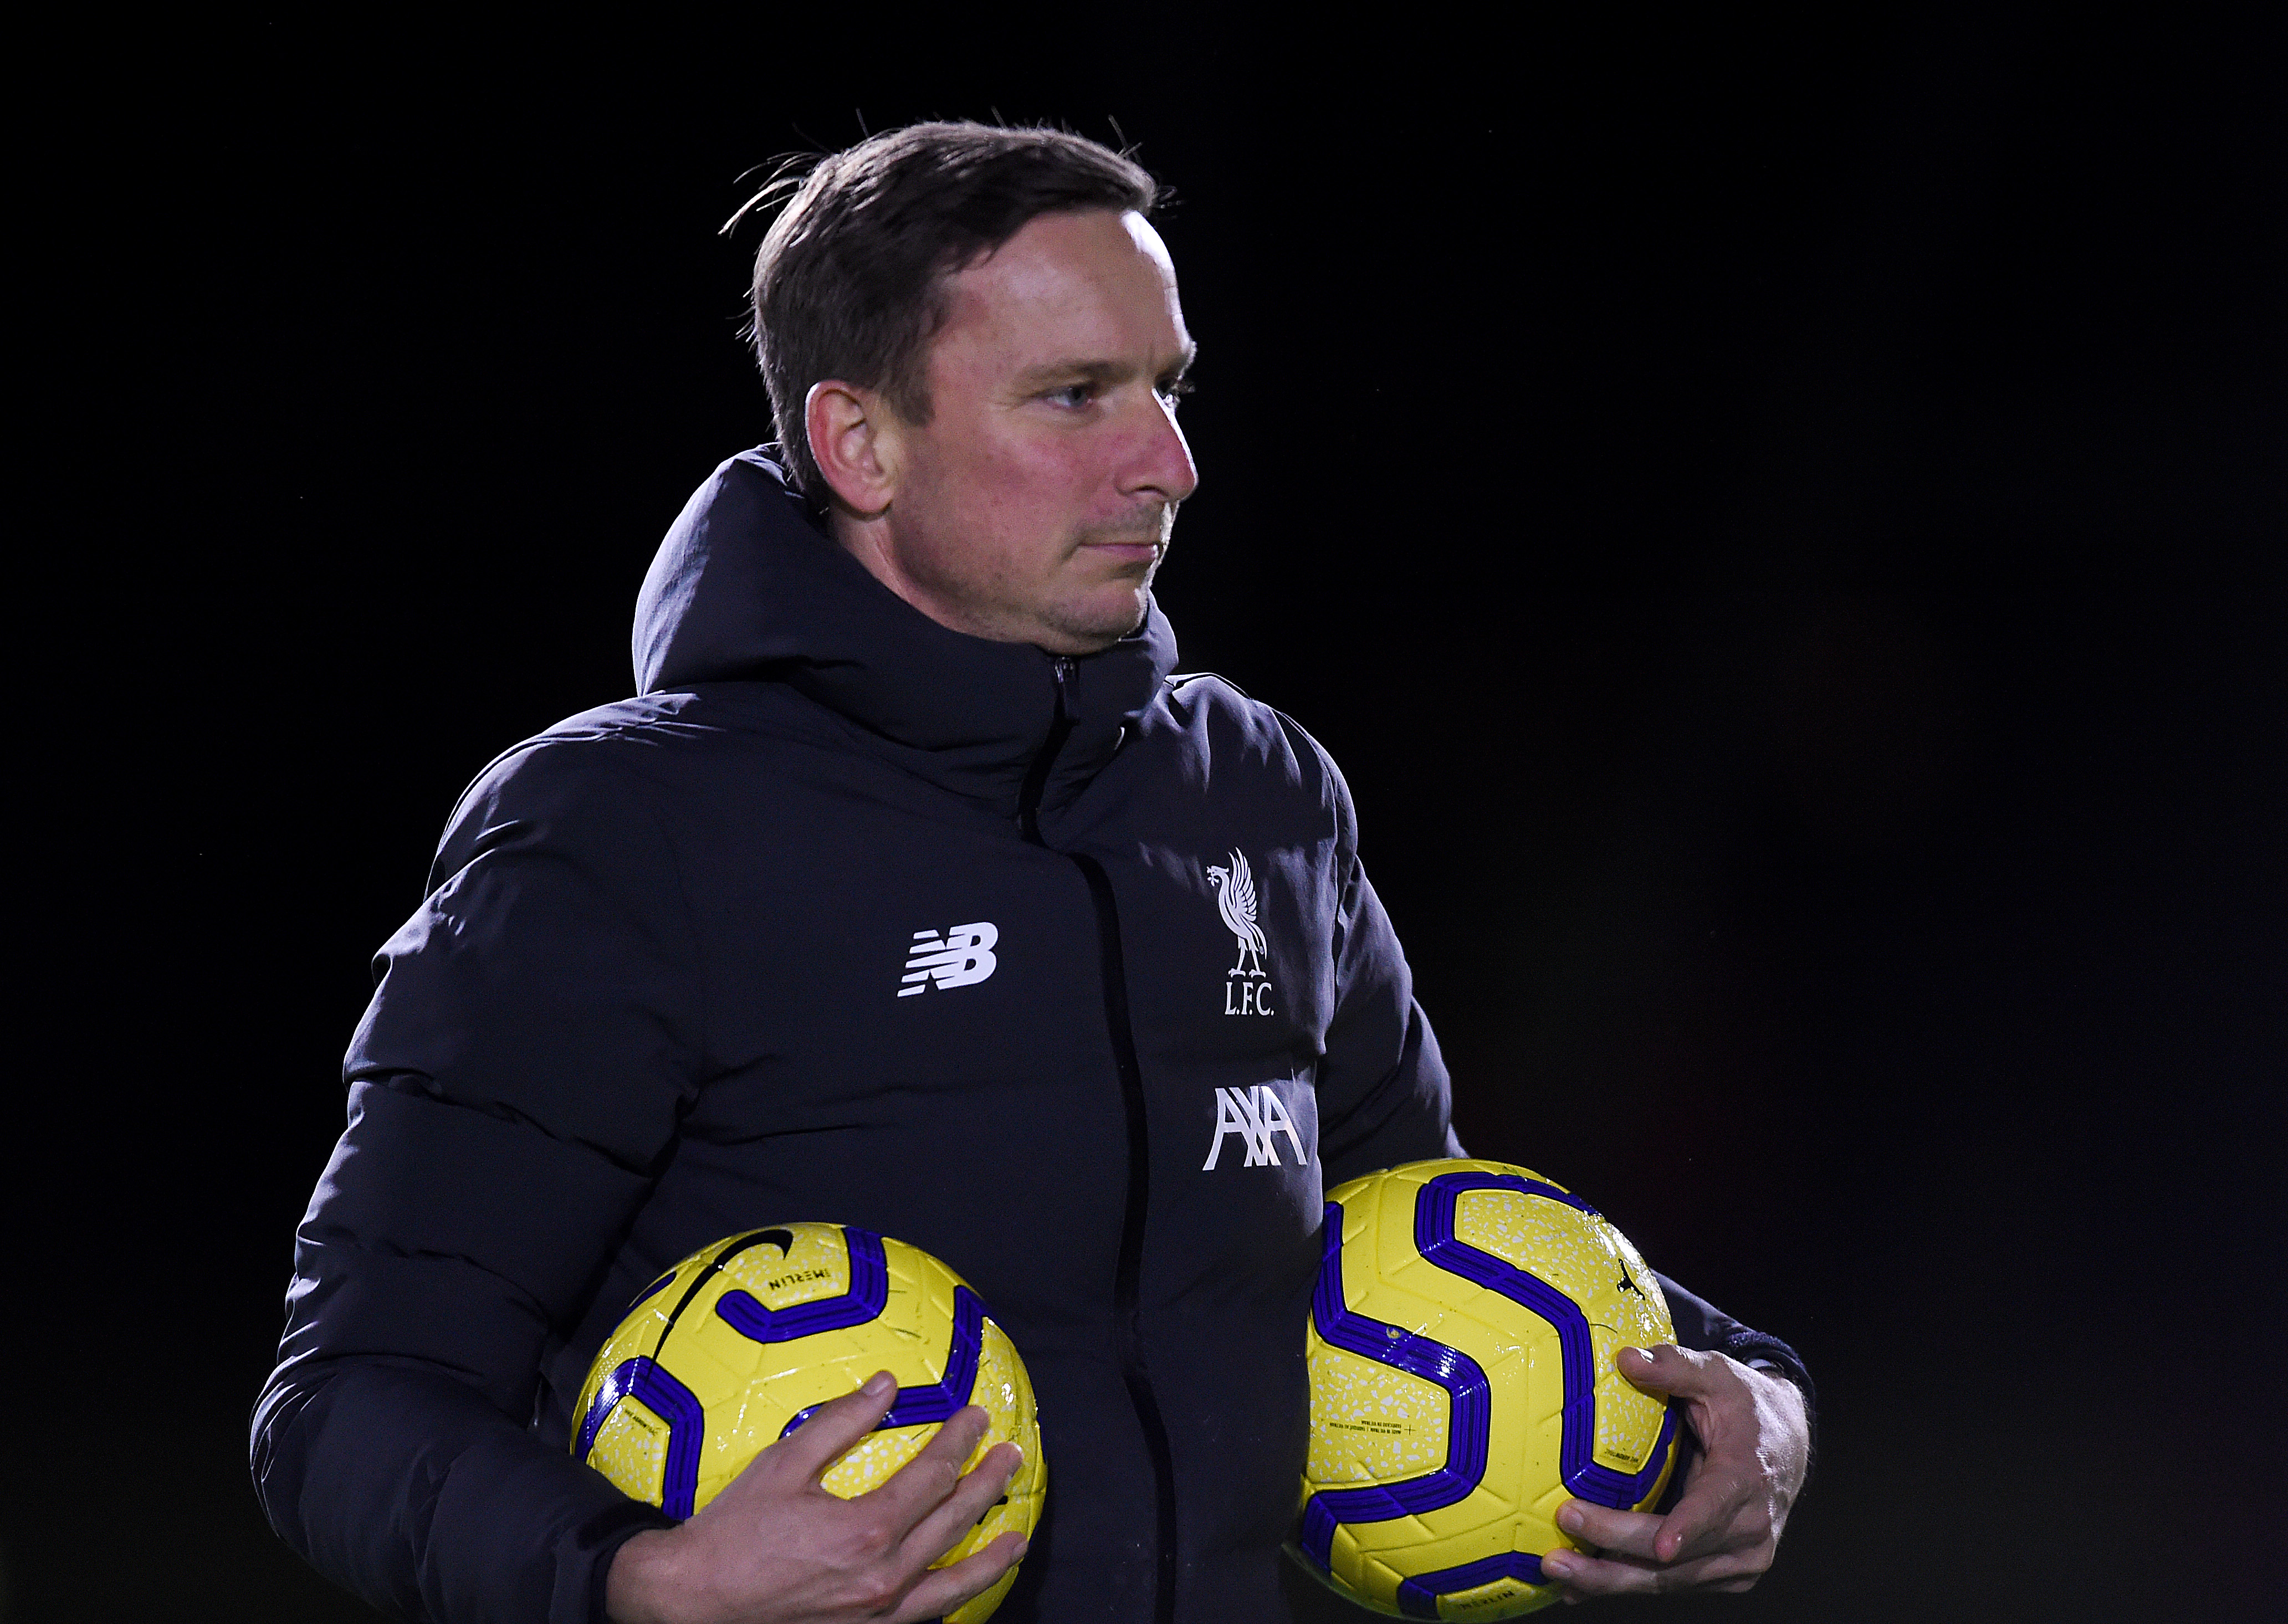 Liverpool's assistant manager Pepijn Lijnders during a training session at Melwood Training Ground on January 09, 2020